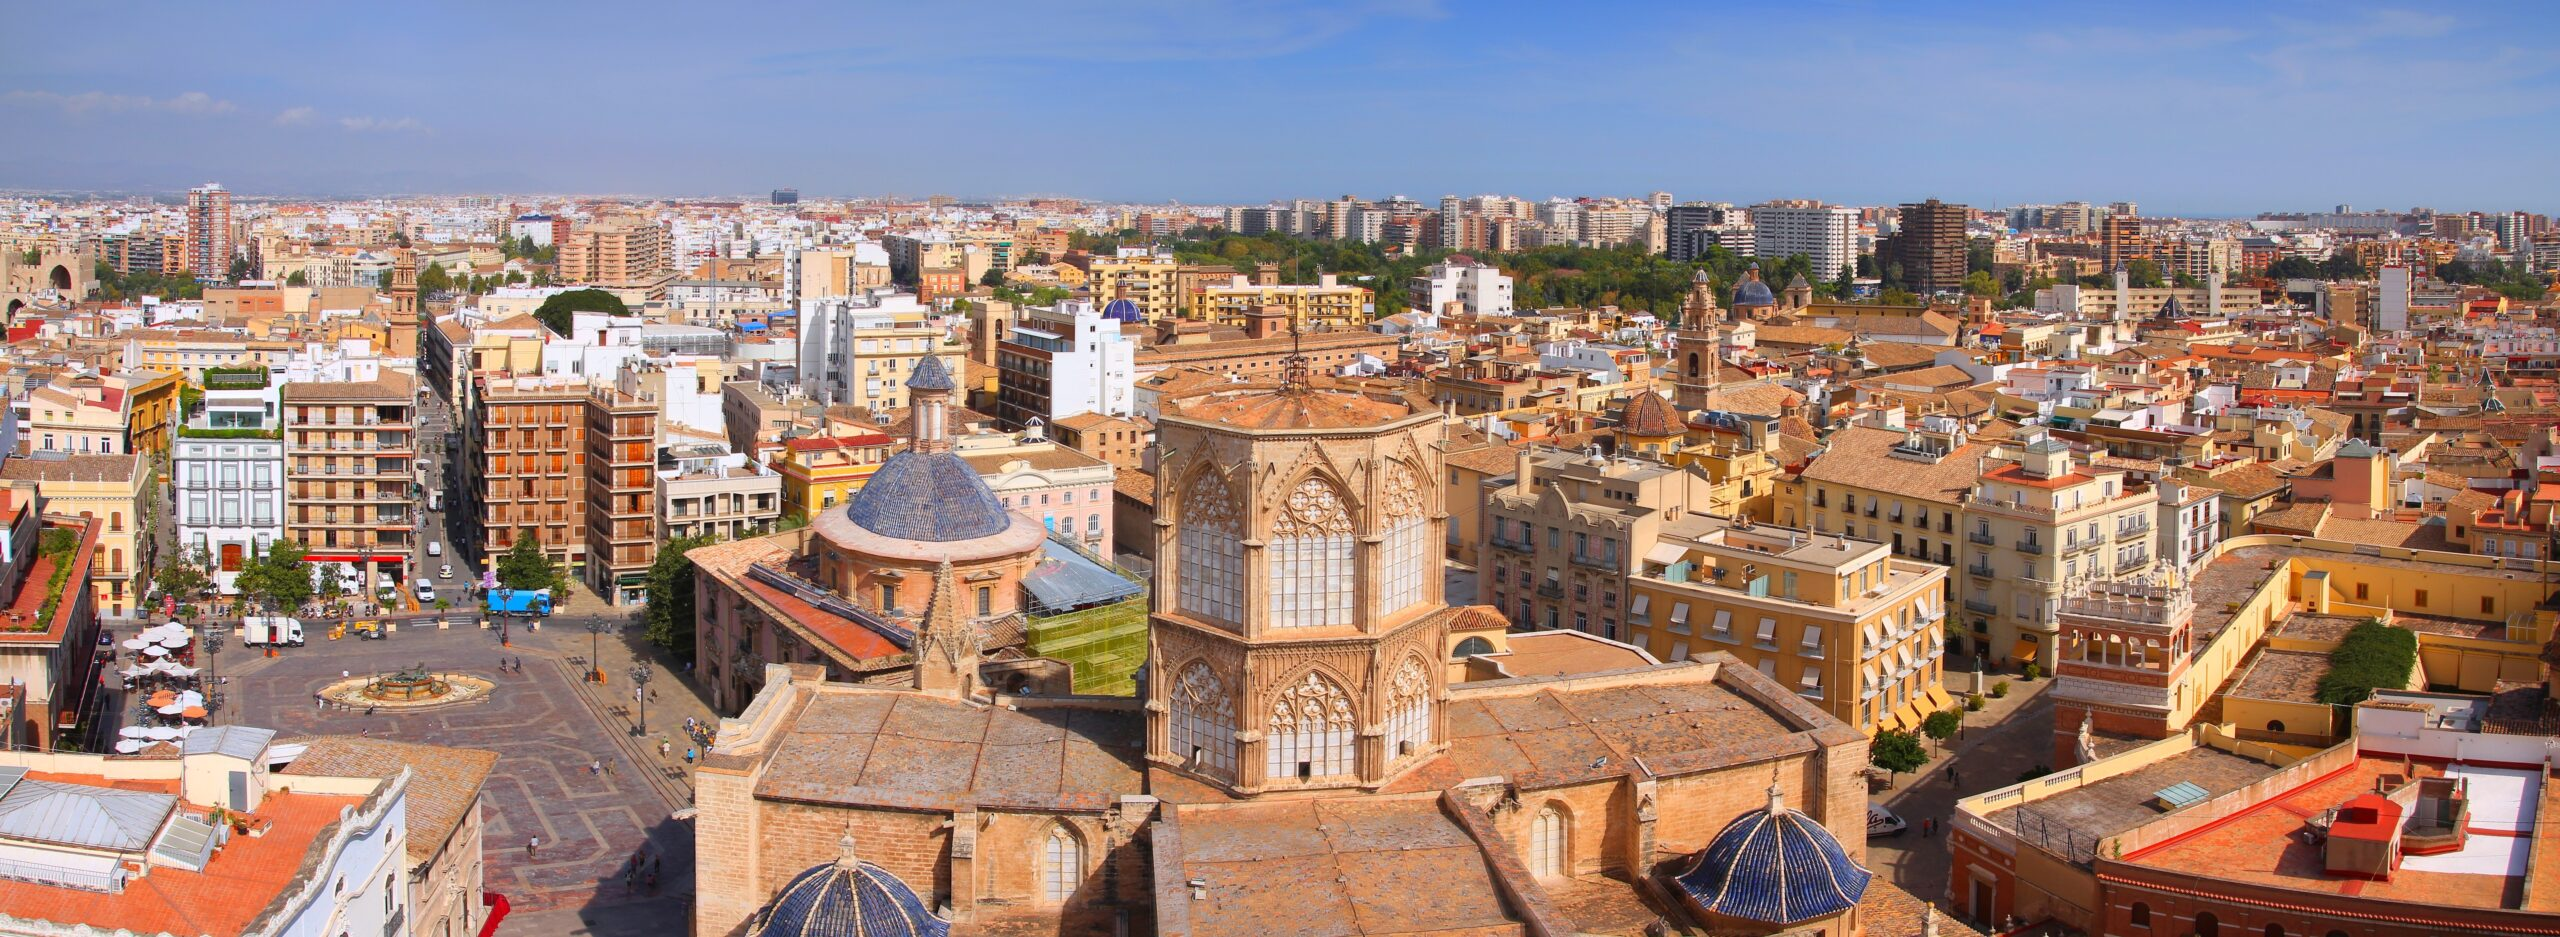 Explore Valencia Old Town In Our Valencia Old Town Tour With Wine & Tapas In 11th Century Monument